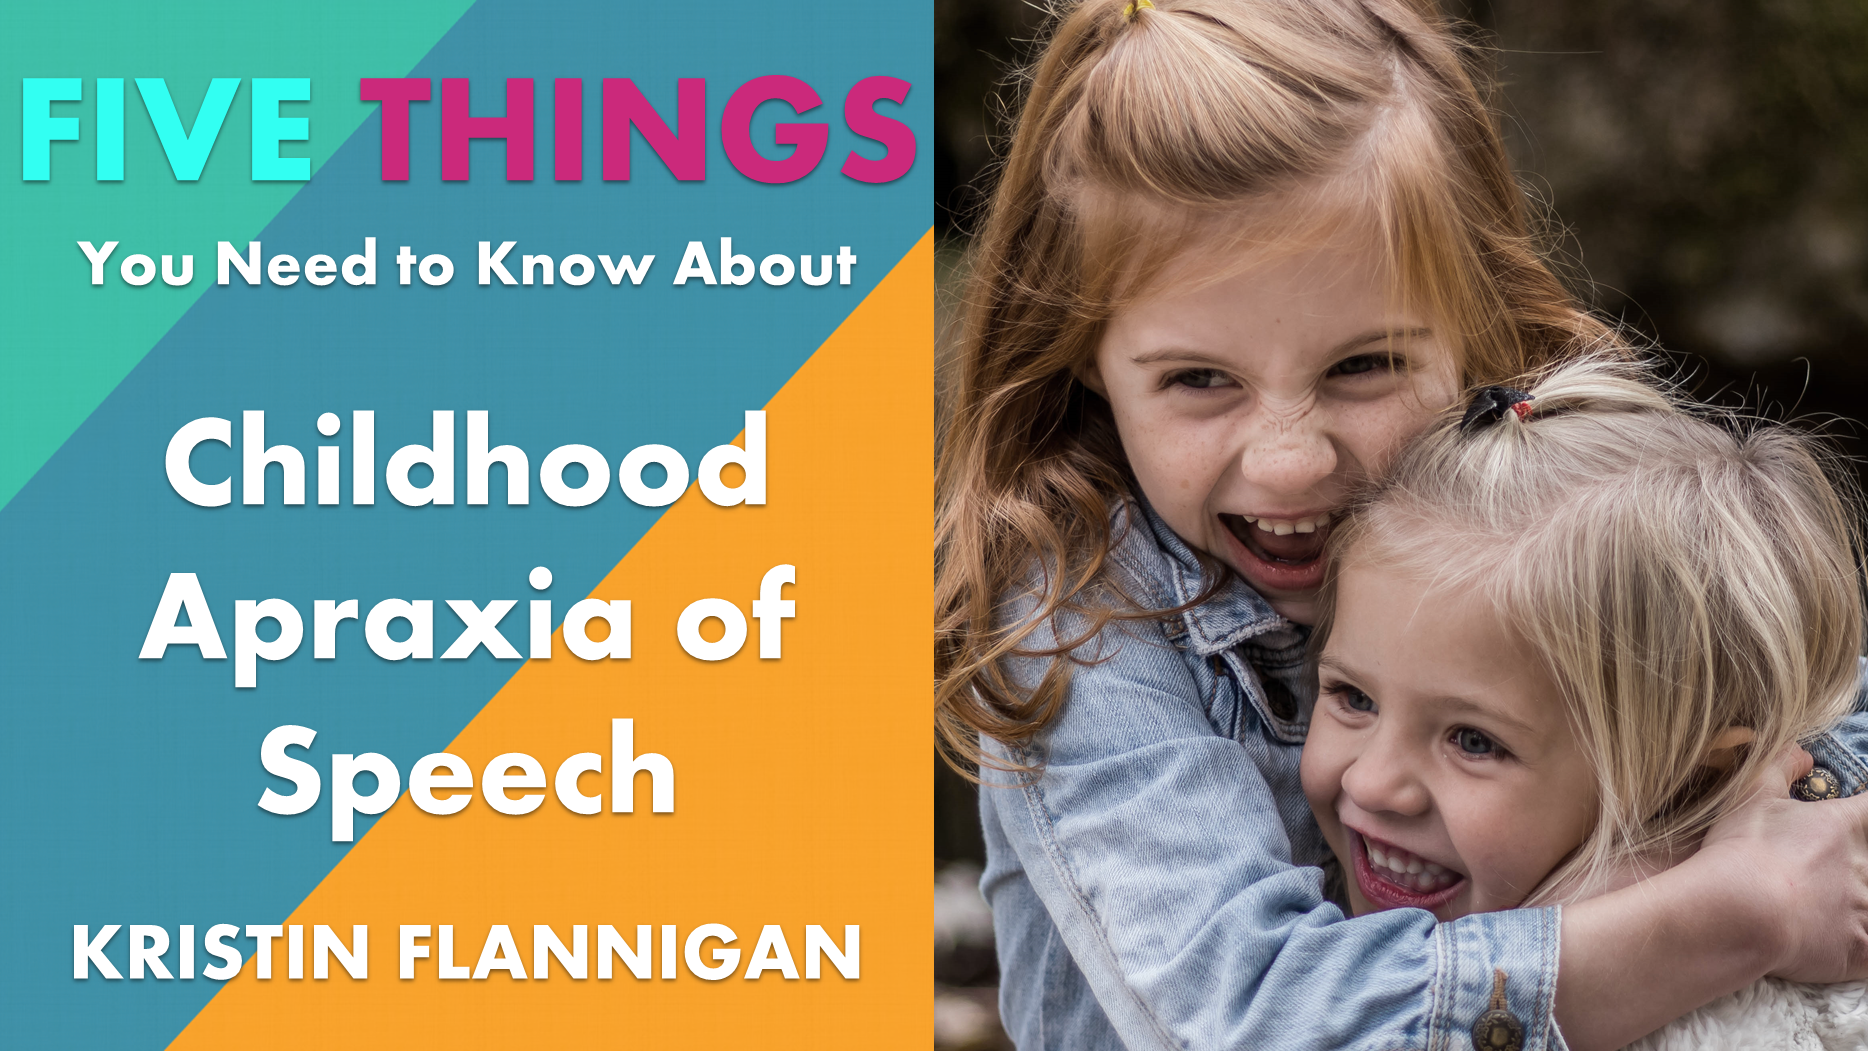 Five Things You Need to Know About Childhood Apraxia of Speech